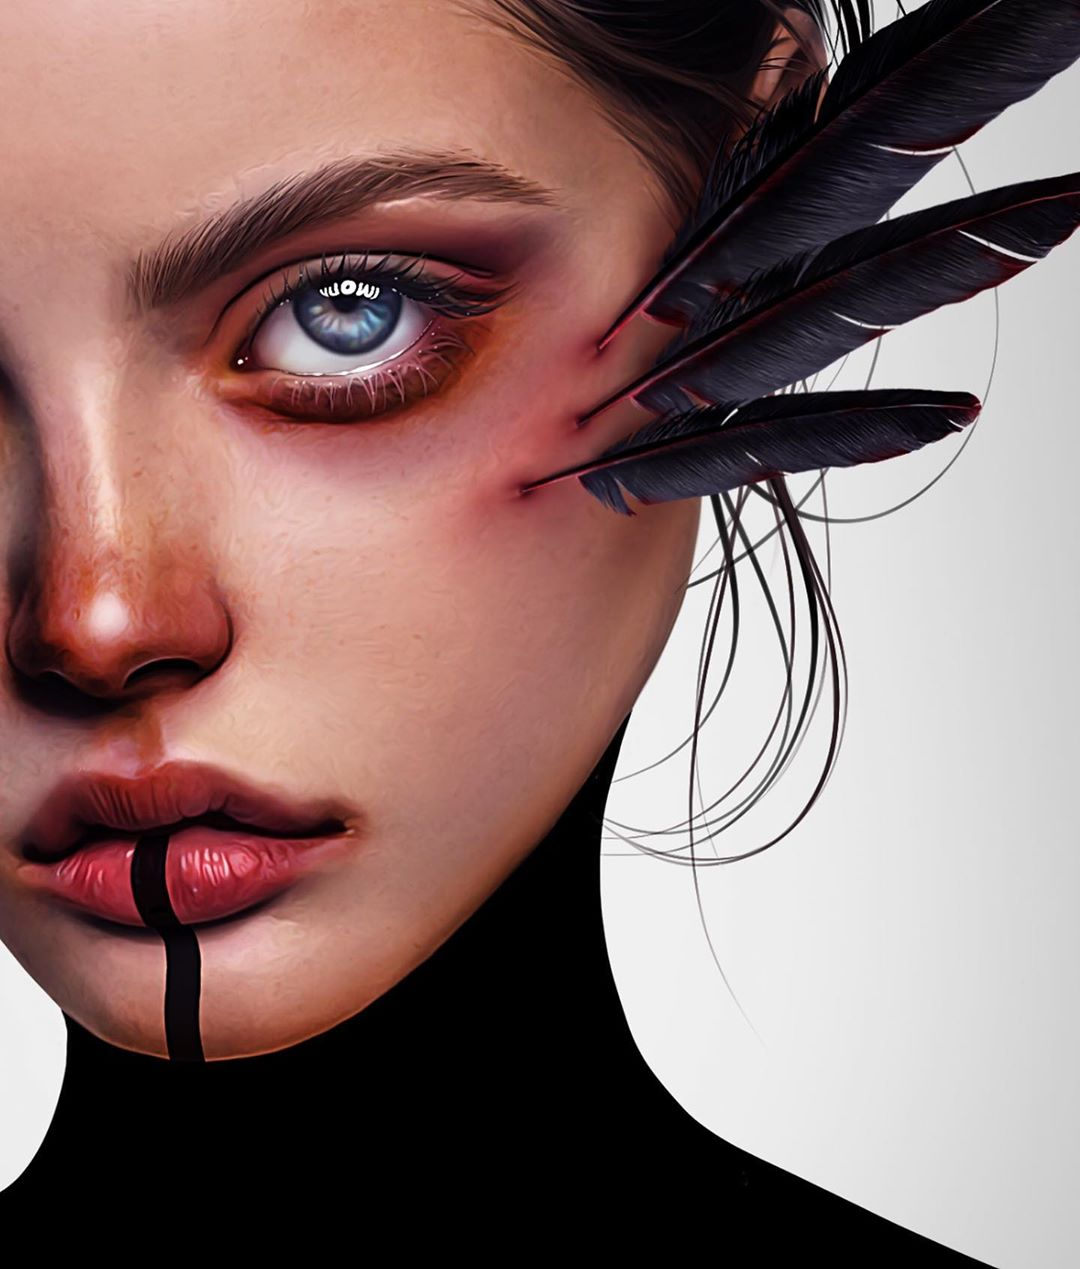 26-Year-Old Digital Artist With Model Looks Creates Stunning Female Illustrations On Tablet 5